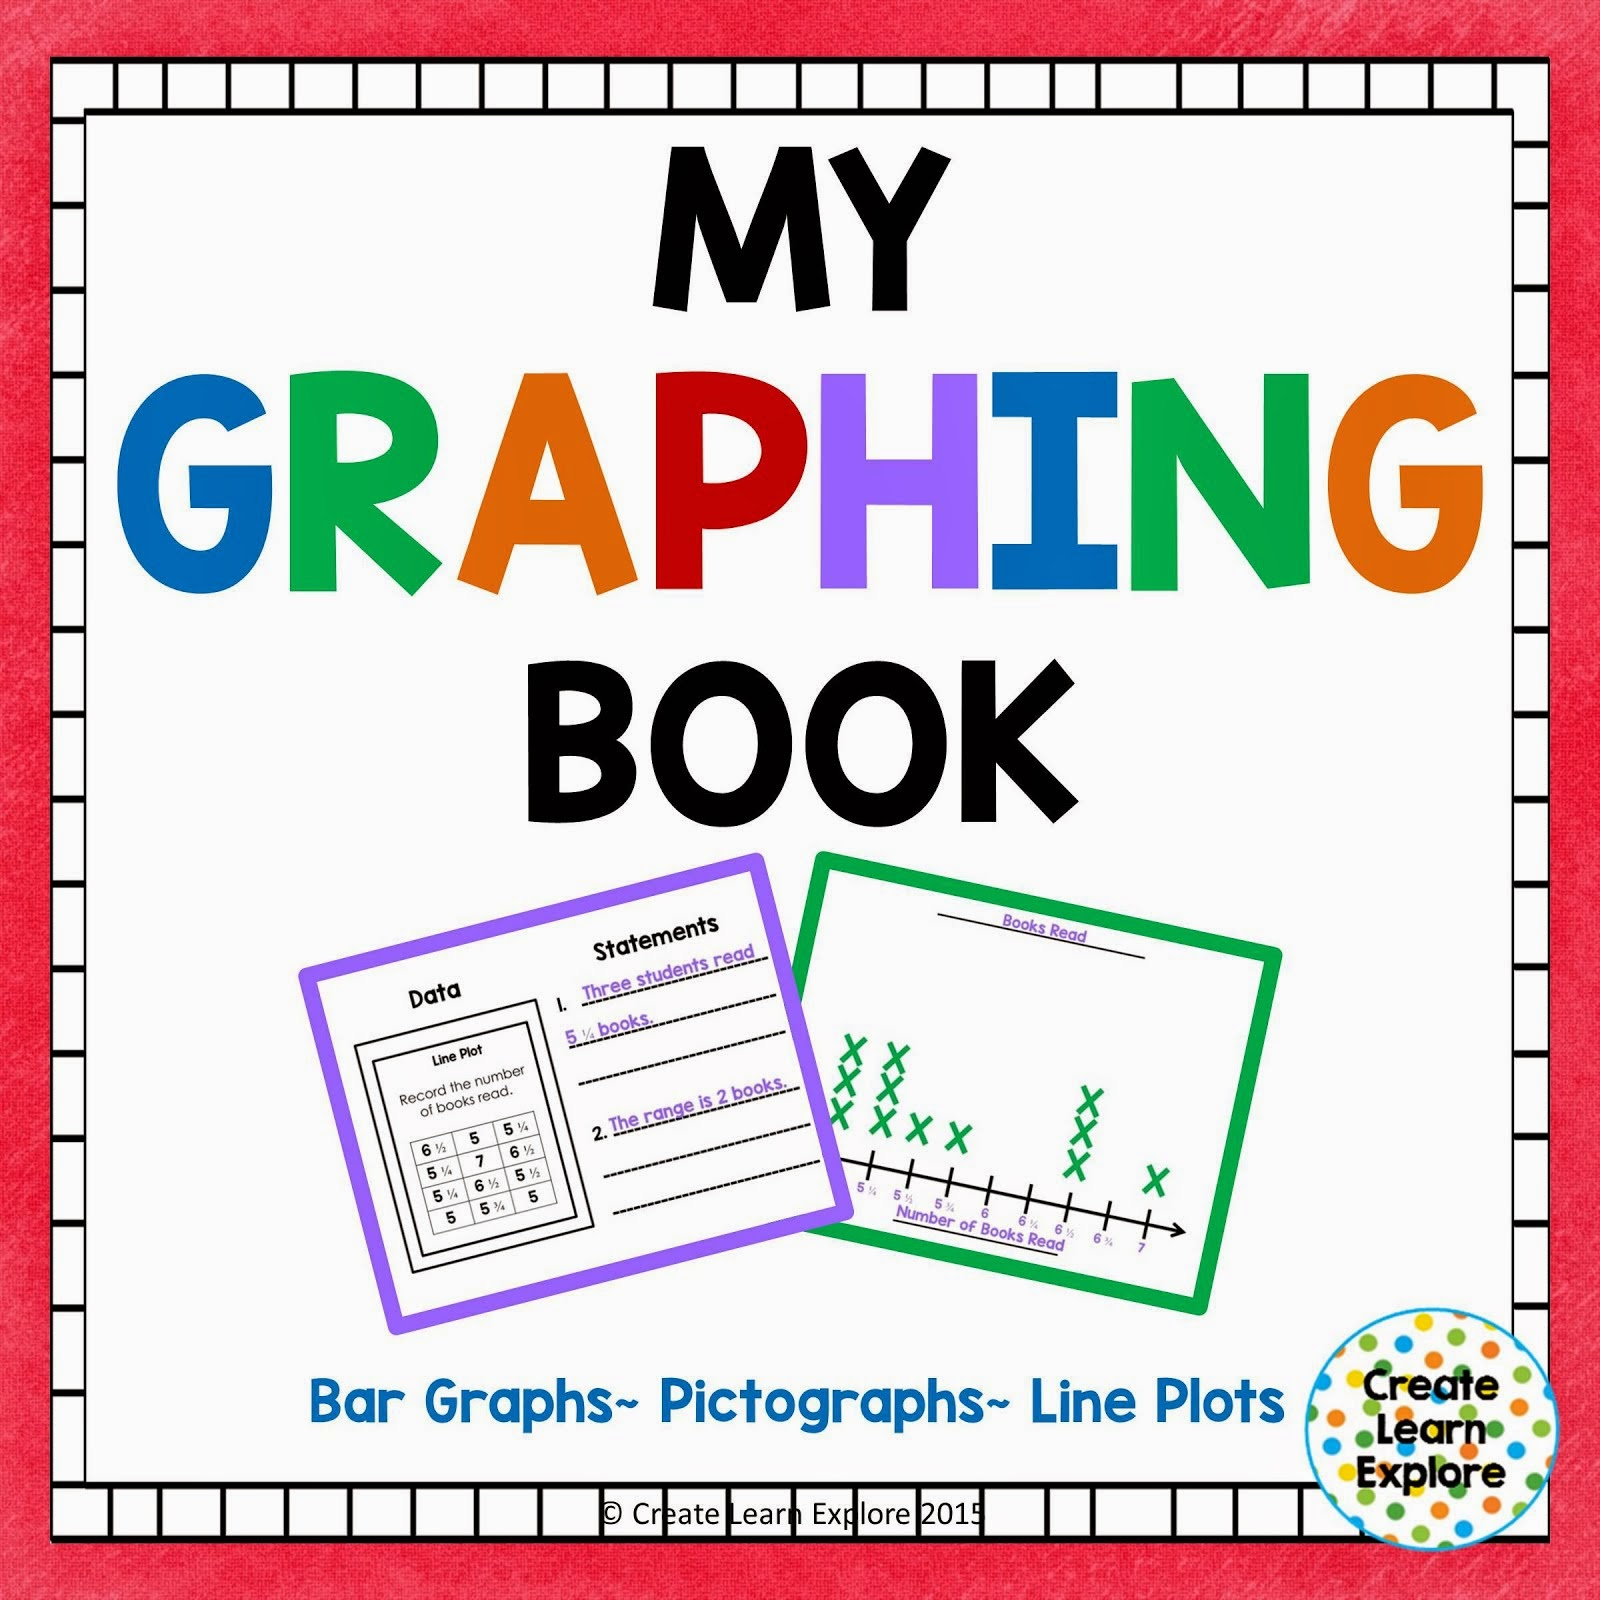 My Graphing Book